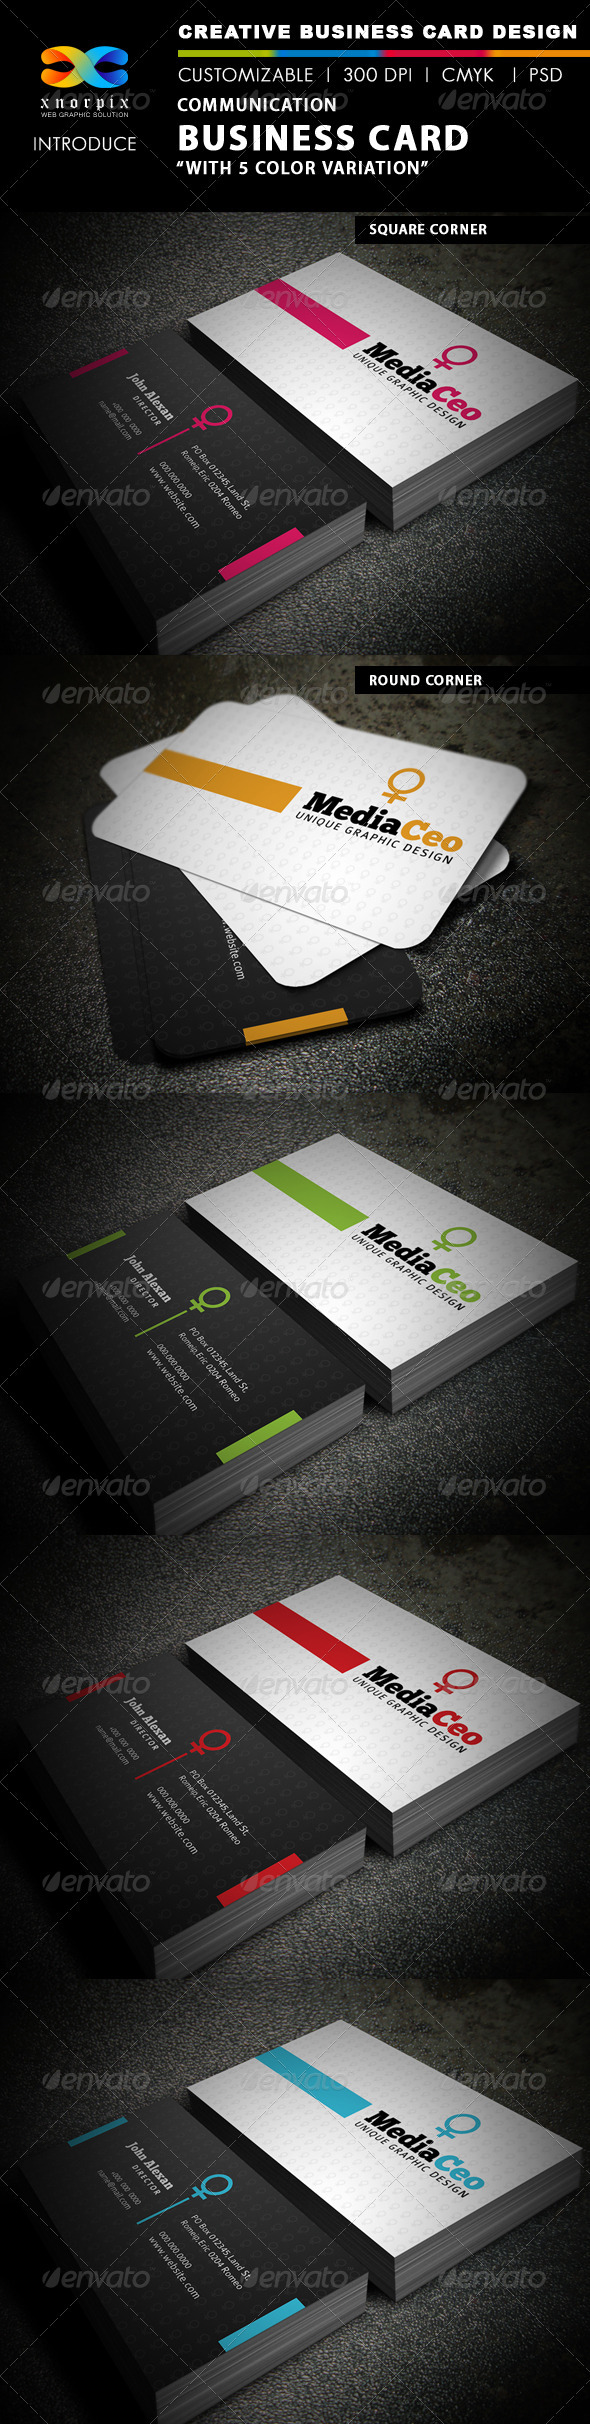 Communication Business Card - Creative Business Cards